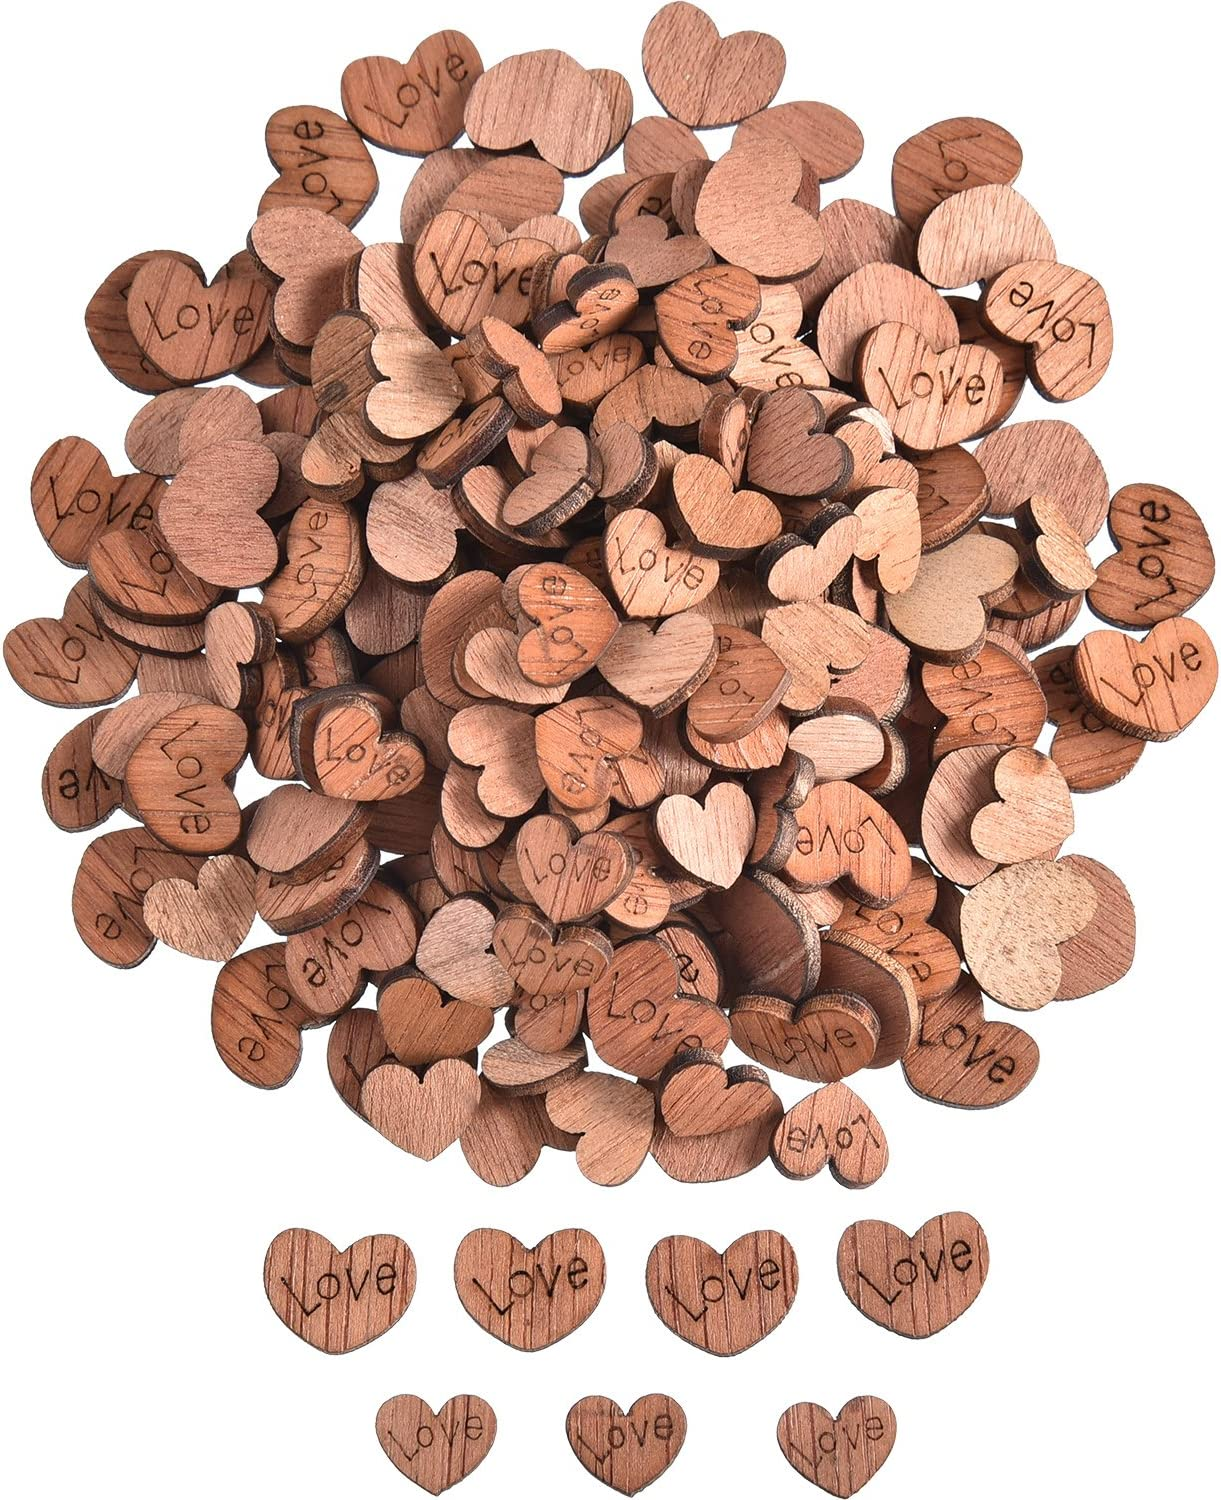 400 Pieces Wooden Love Hearts Natural Ornaments Crafts Decor Rustic Wooden Pattern Love Heart Wedding Table Decoration Crafts (Color 1)